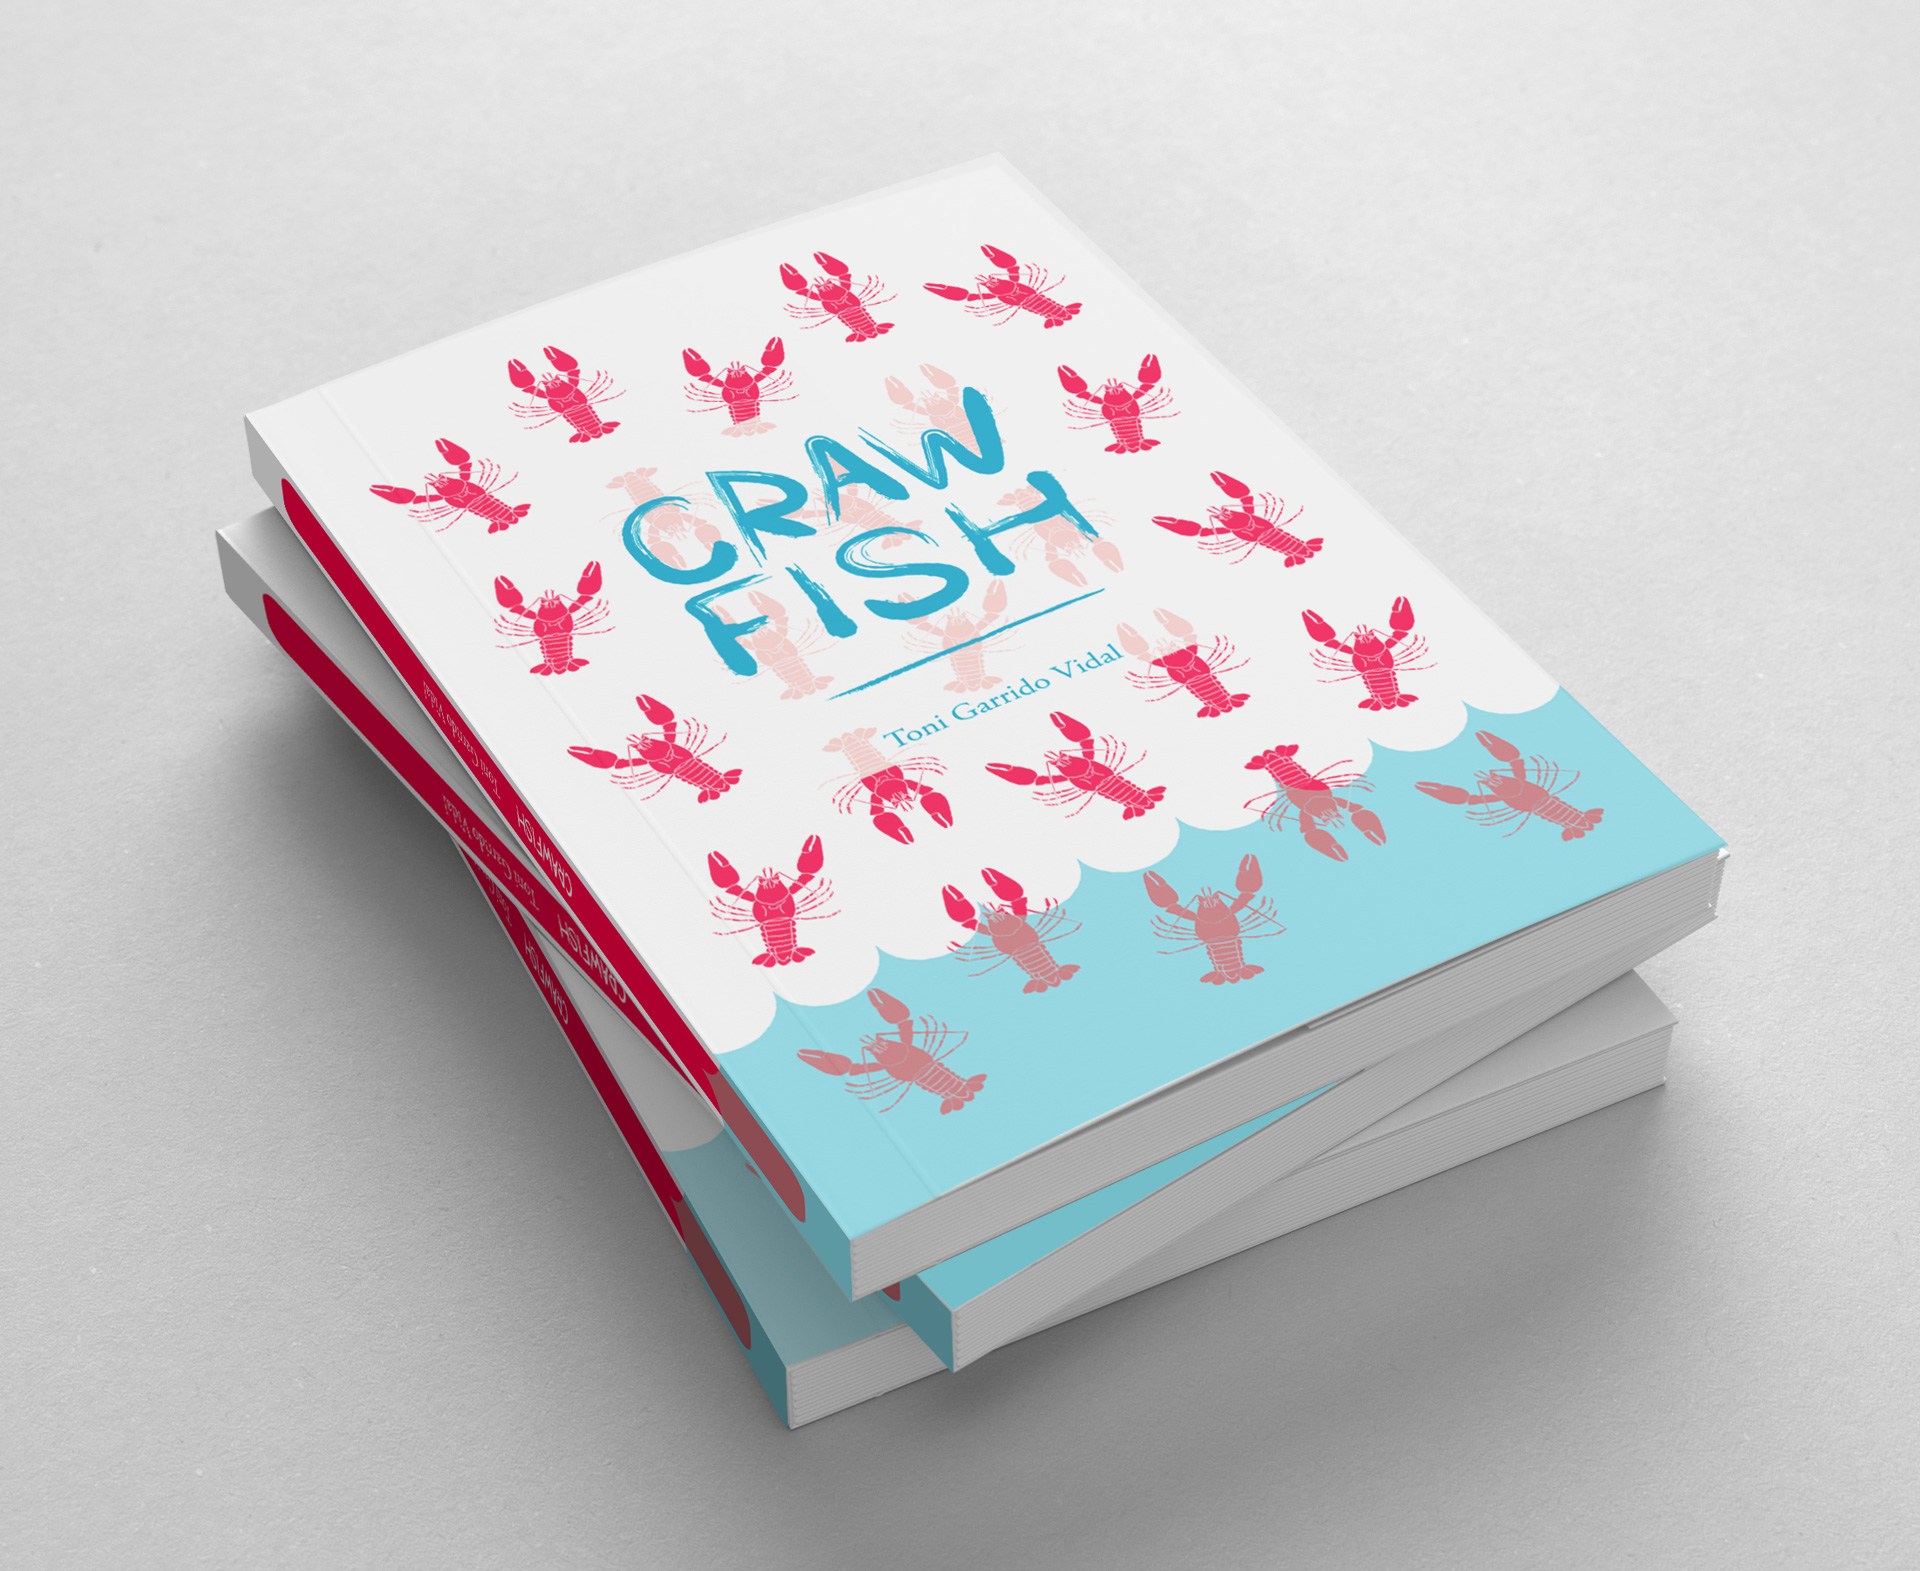 Crawfish_libro